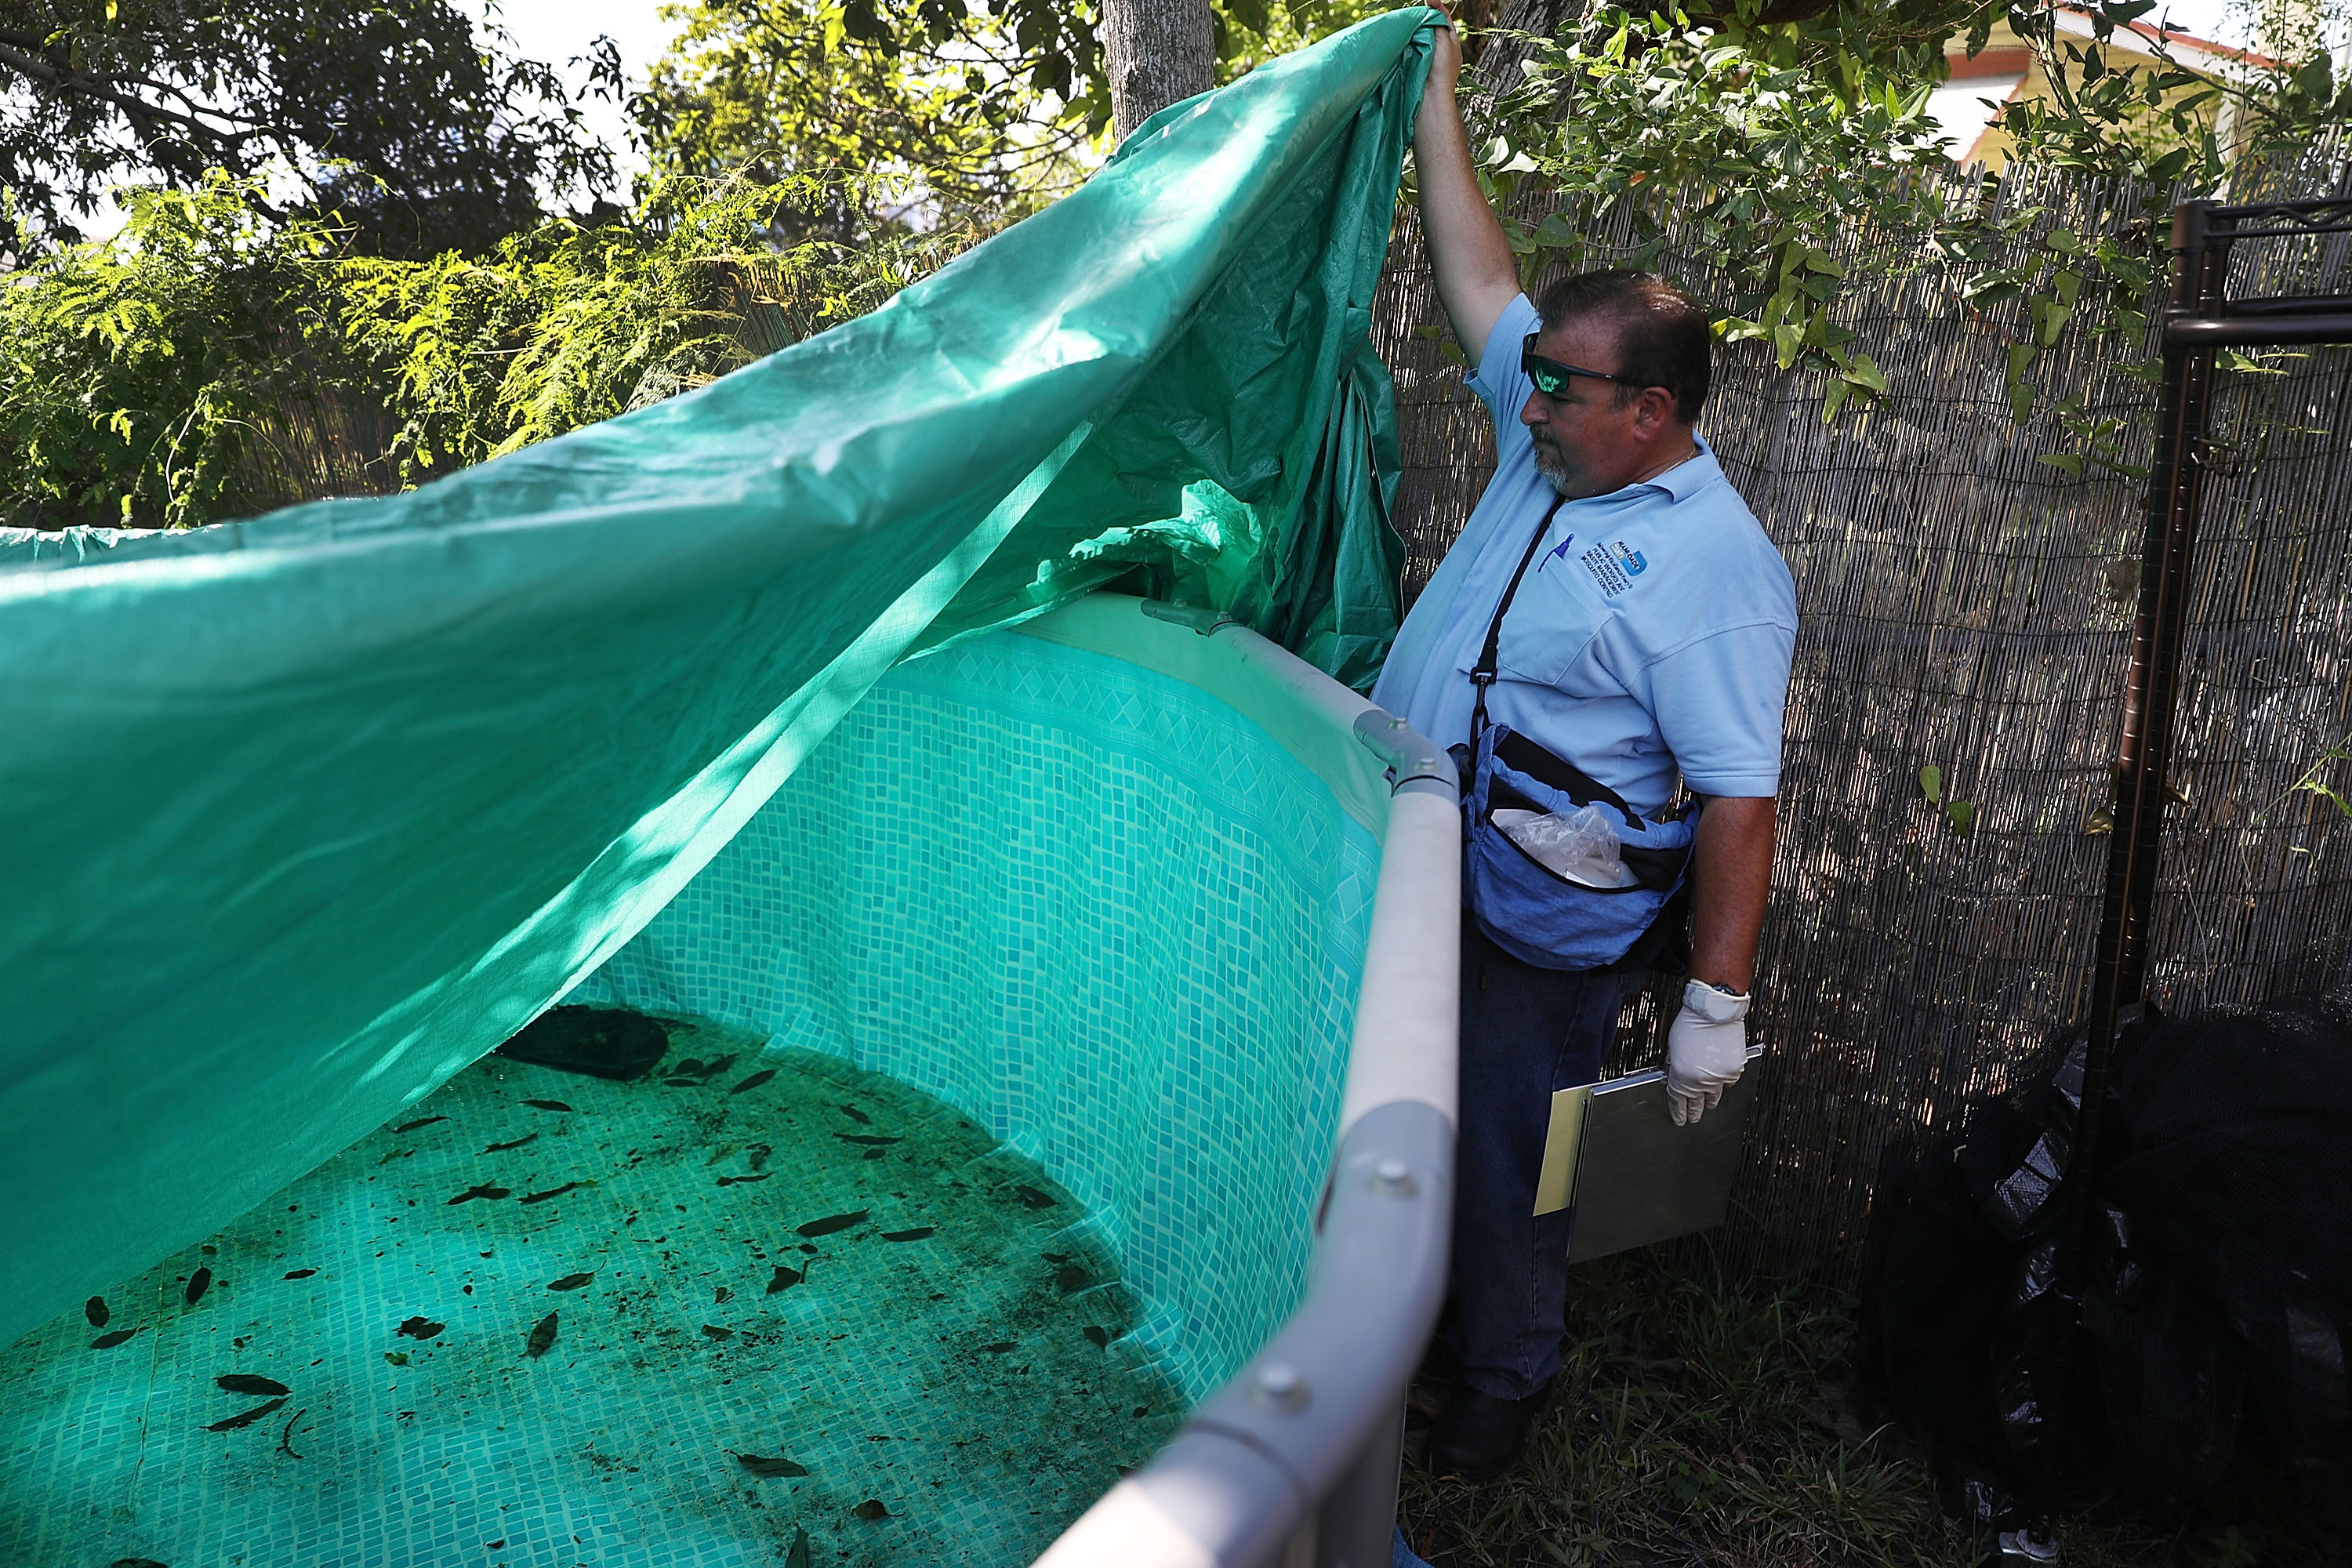 Robert Muxo, a Miami-Dade County mosquito control inspector, inspects a property for mosquitos or breeding areas in the Wynwood neighborhood as the USA fights to control the Zika virus outbreak.